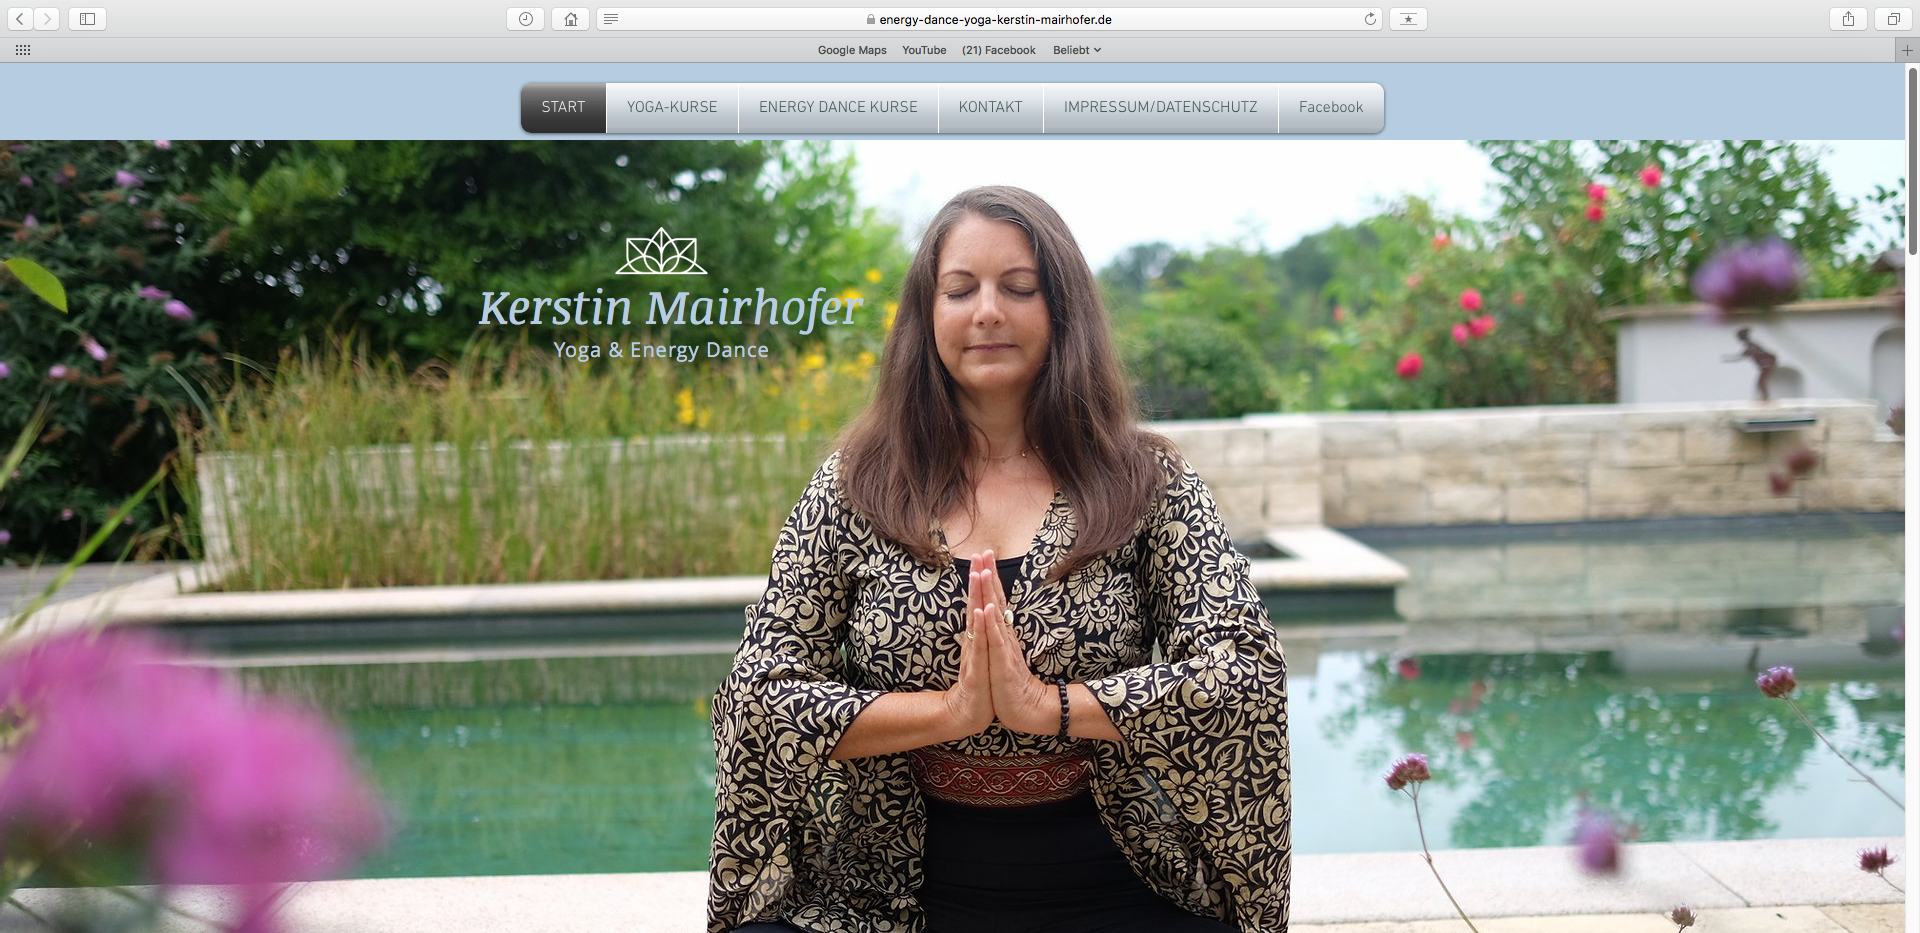 Website Kerstin Mairhofer Energy Dance